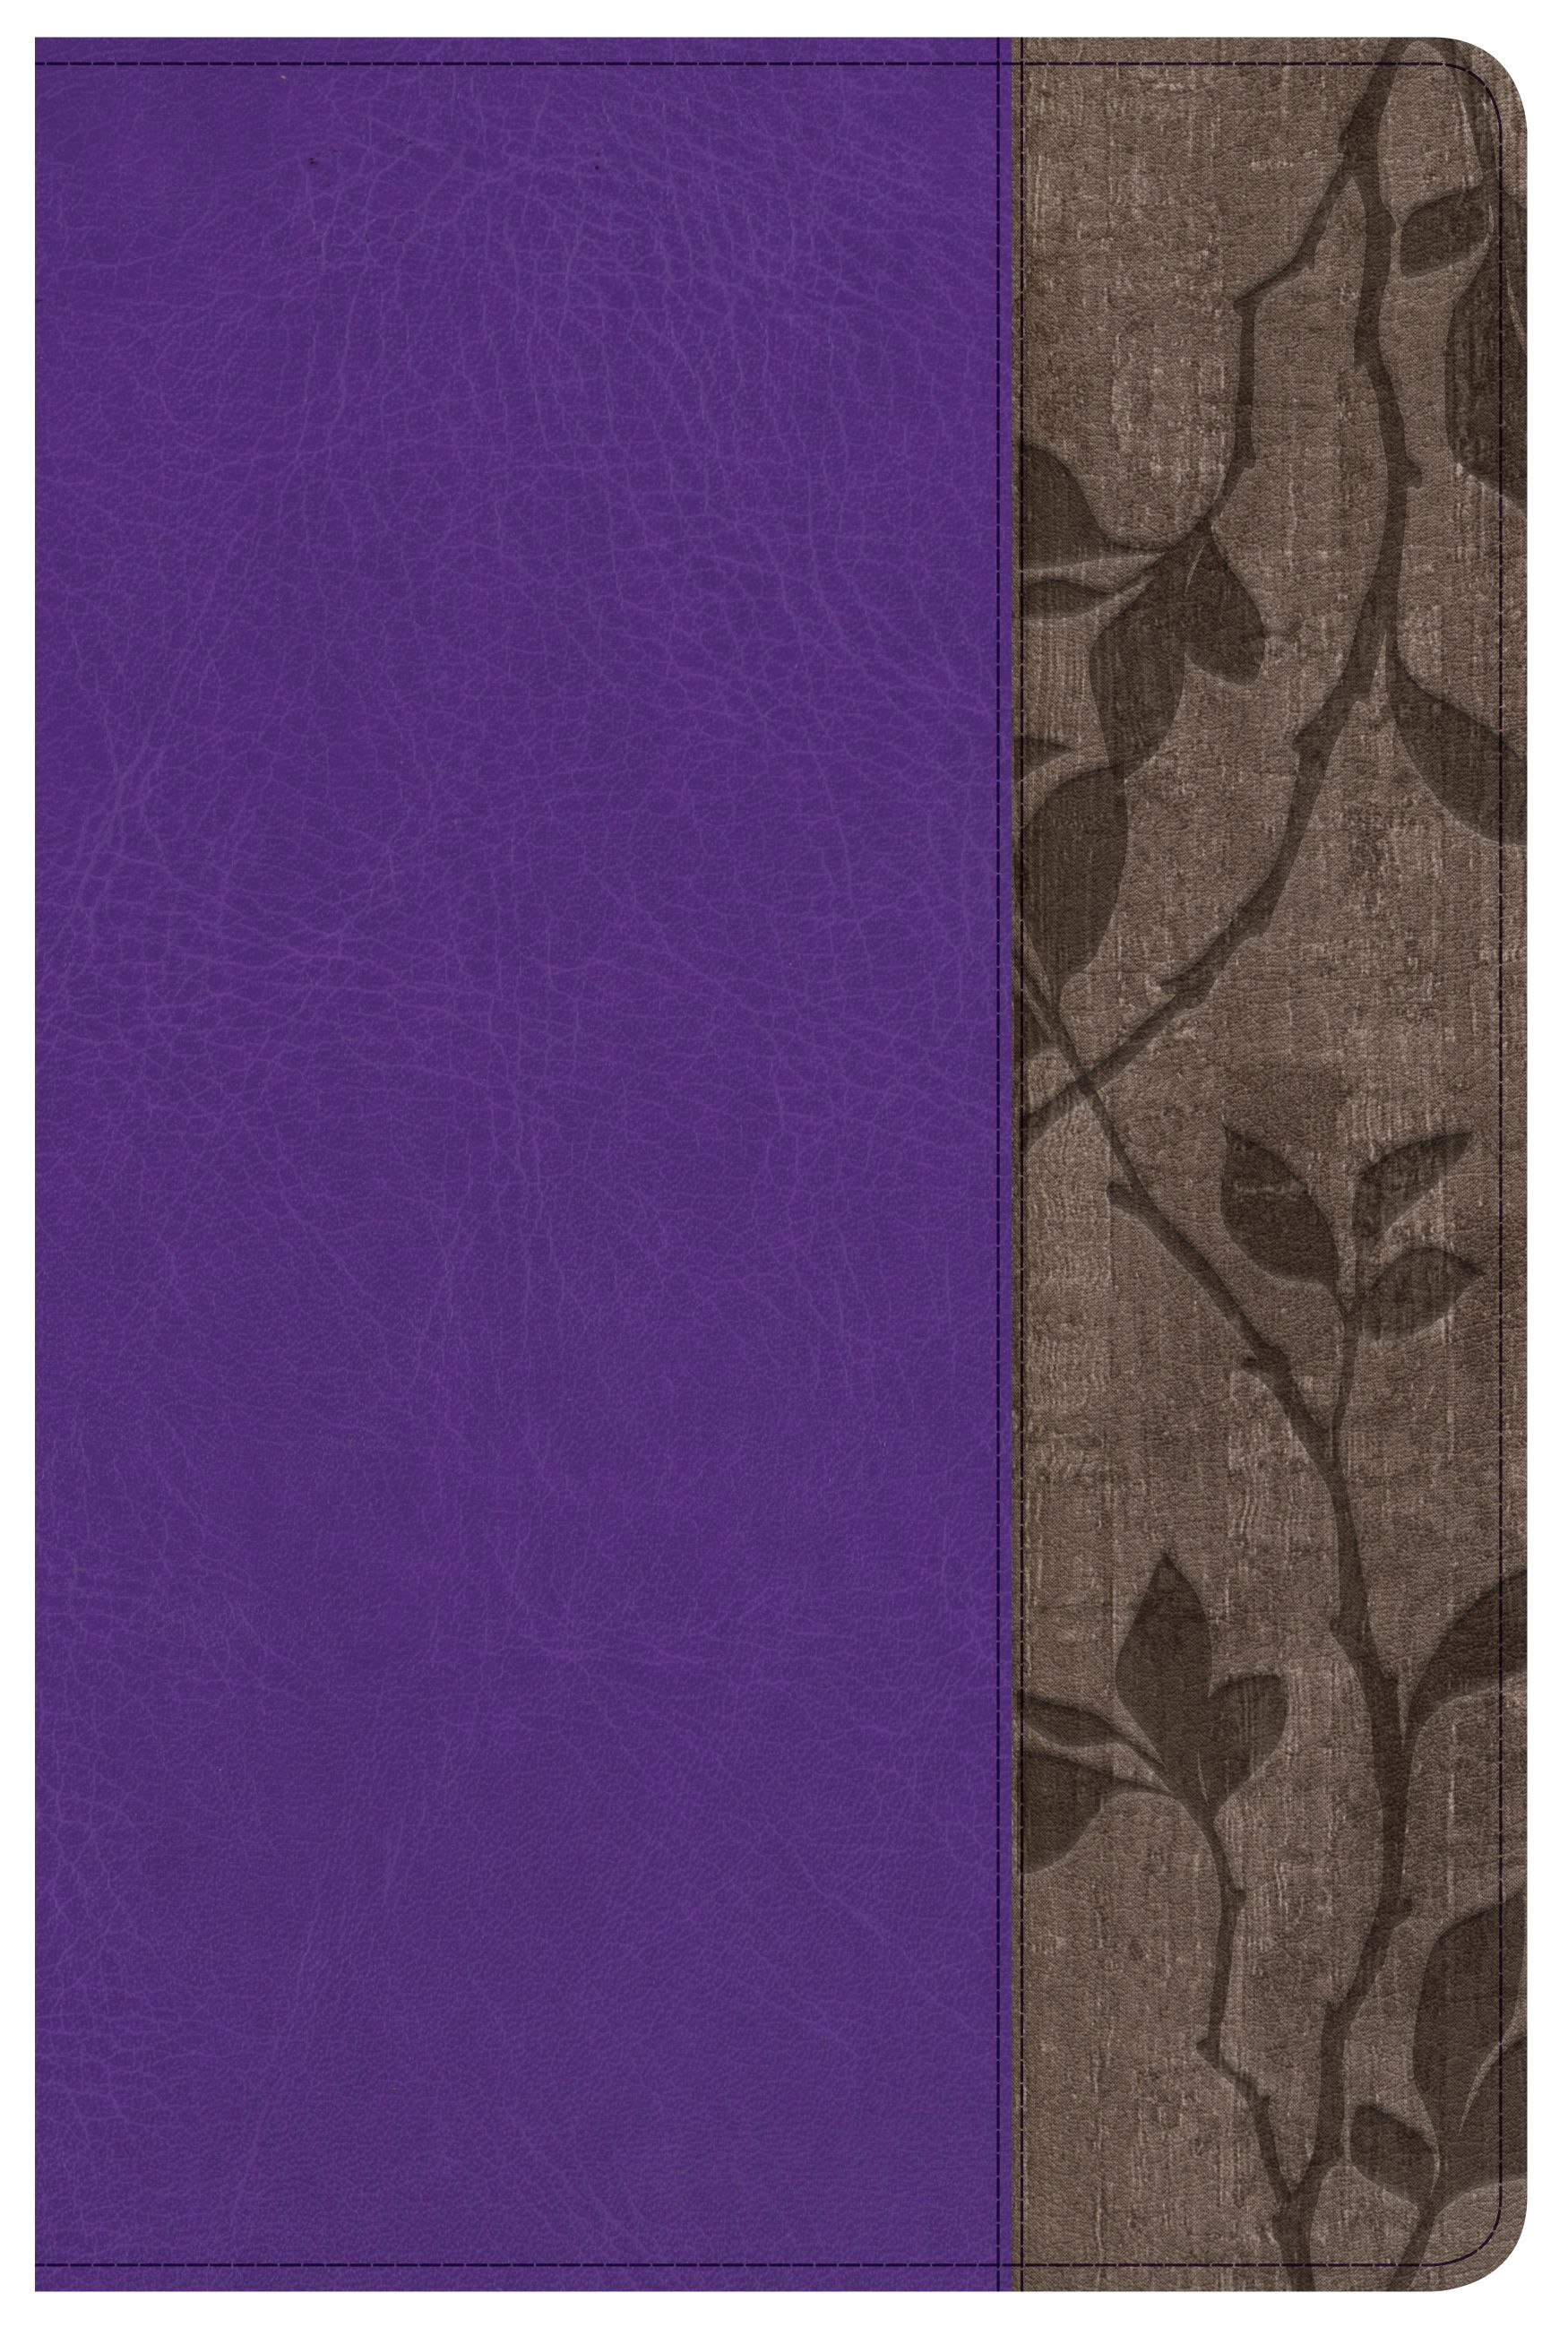 Holman Study Bible: NKJV Edition Personal Size, Purple LeatherTouch